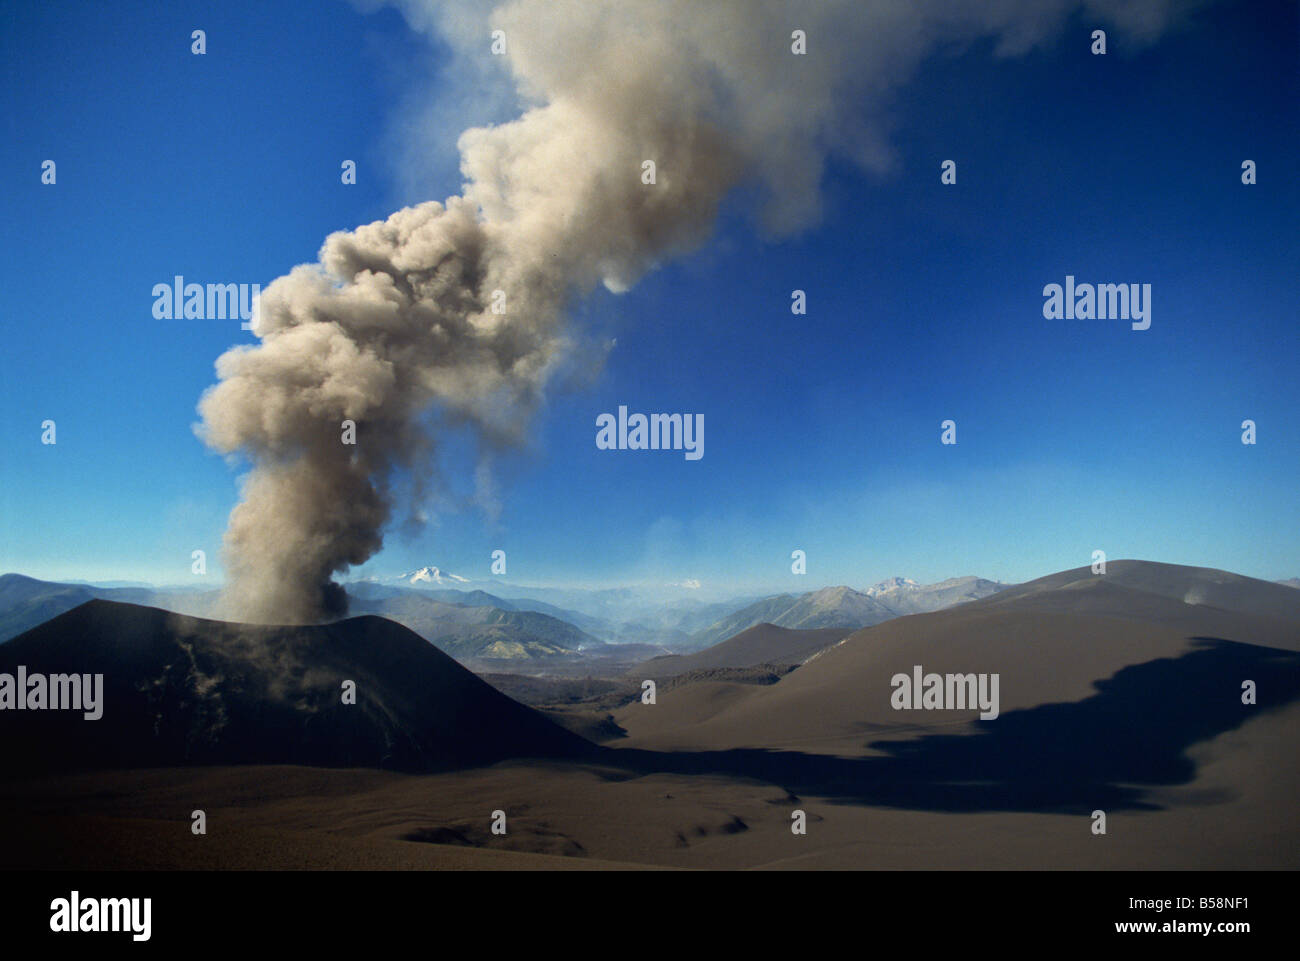 New eruptive cone on the flank of Volcan Lonquimay, Araucania region, Chile, South America - Stock Image